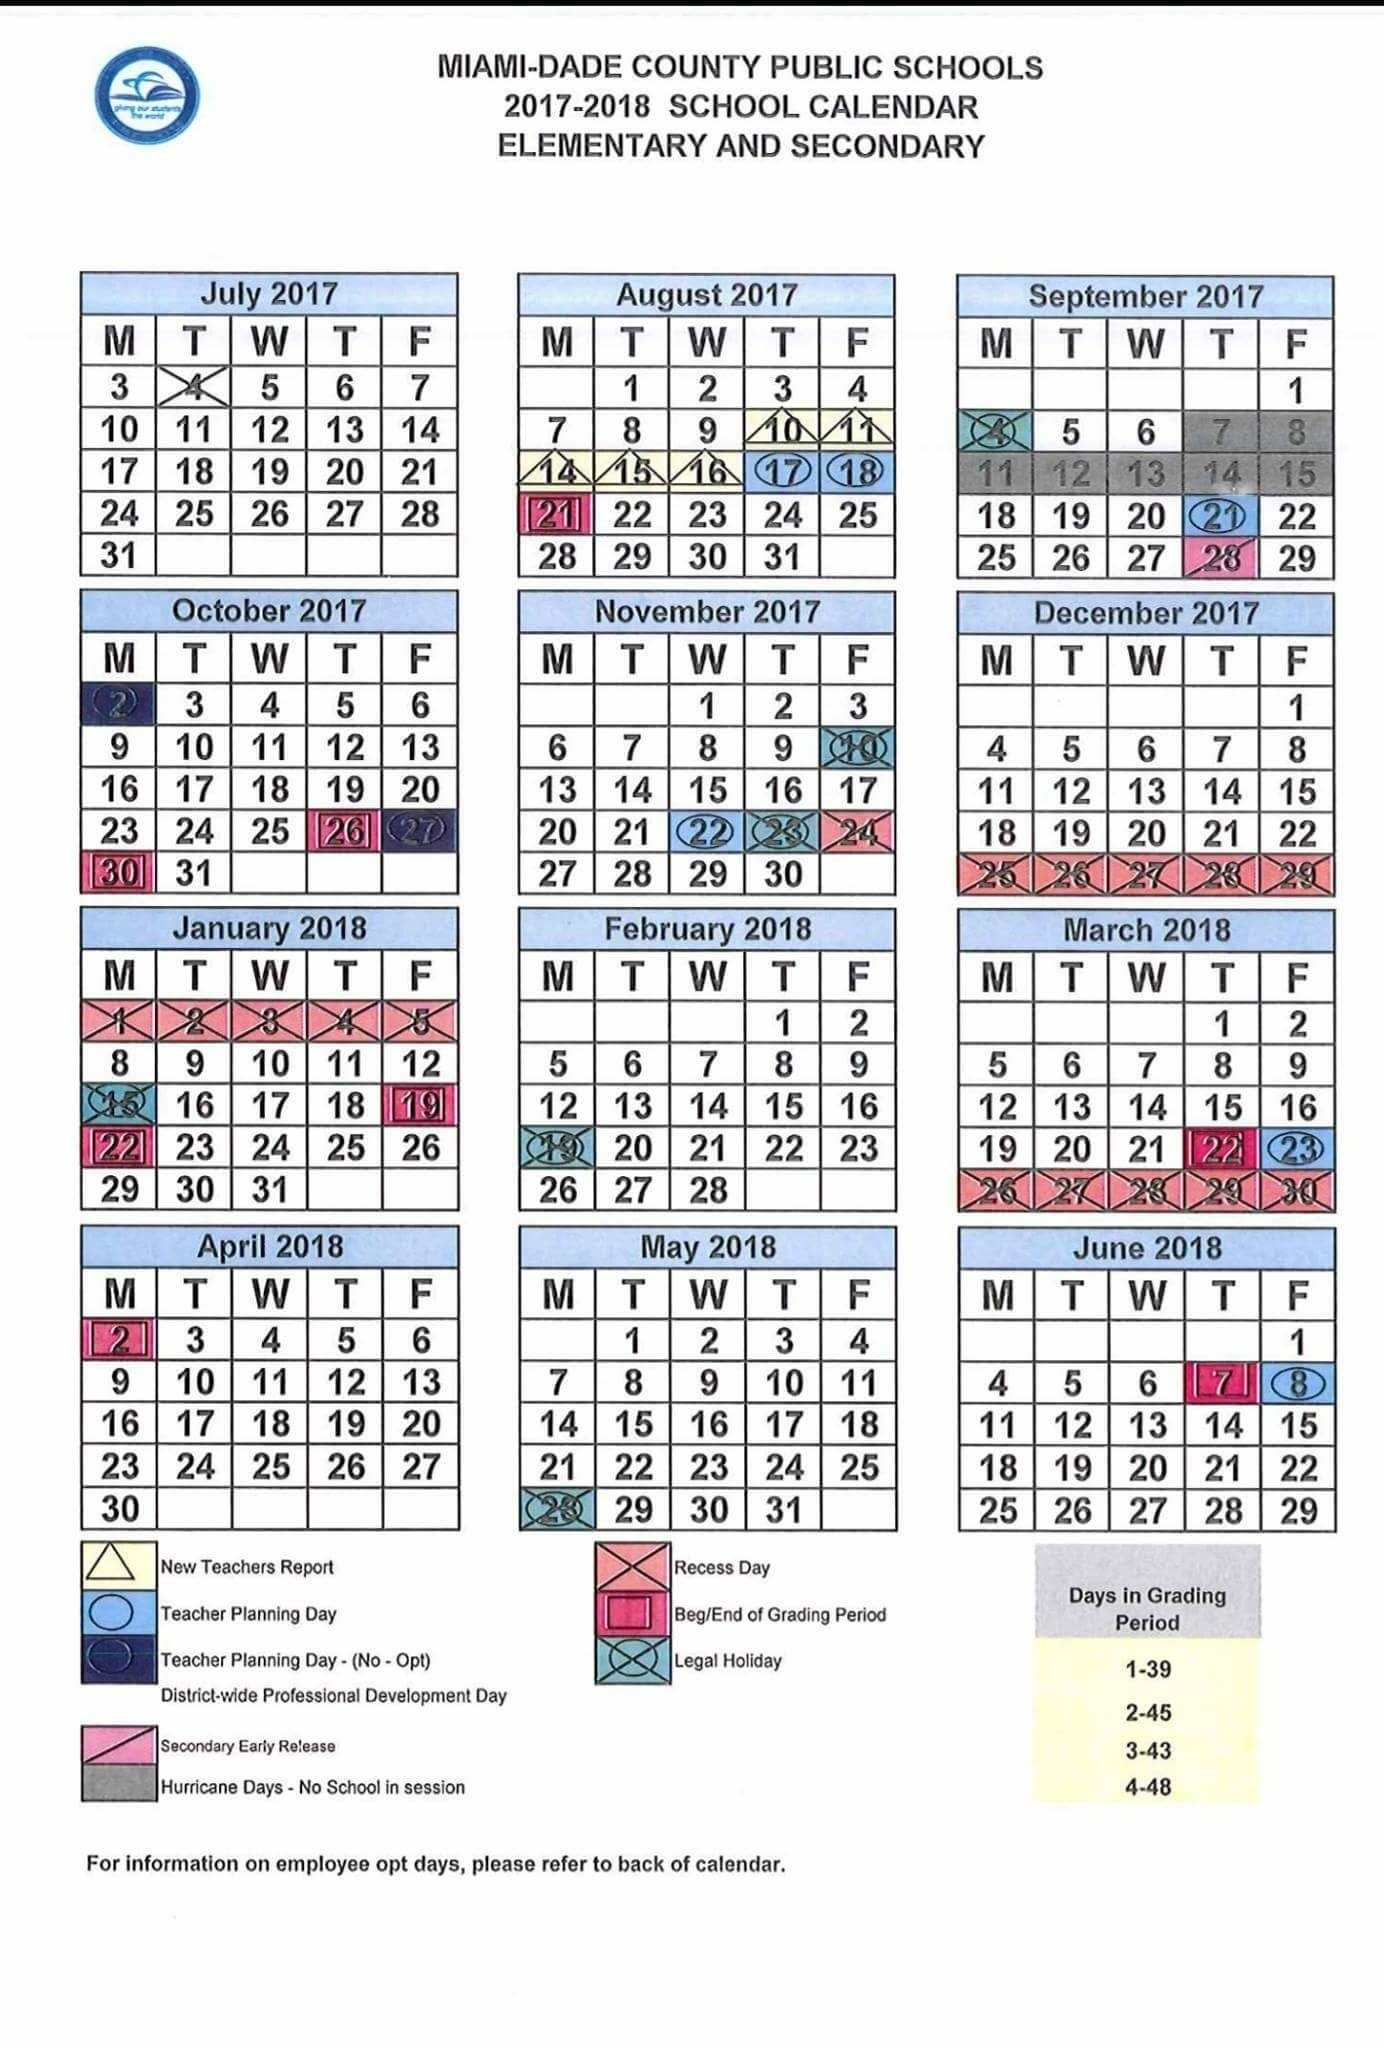 Revised 2017-18 School Calendar – Dr. Dorothy Bendross-Mindingall_Calendar School Year Miami Dade